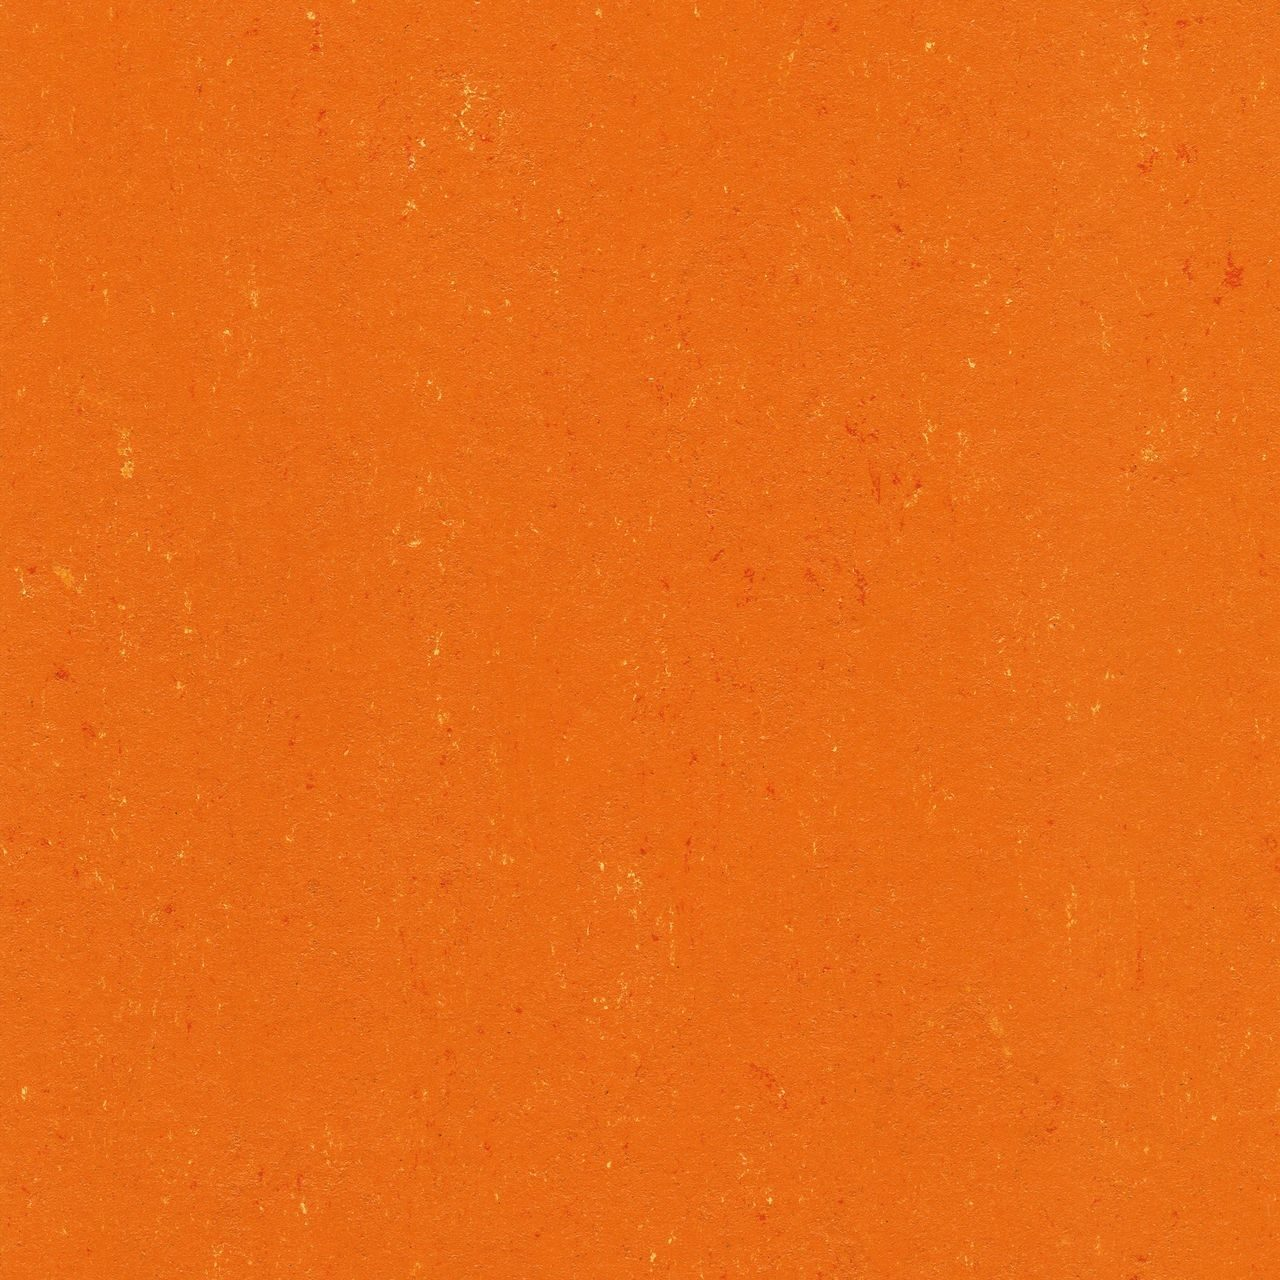 Colorette LPX/PUR 131-170 kumquat orange